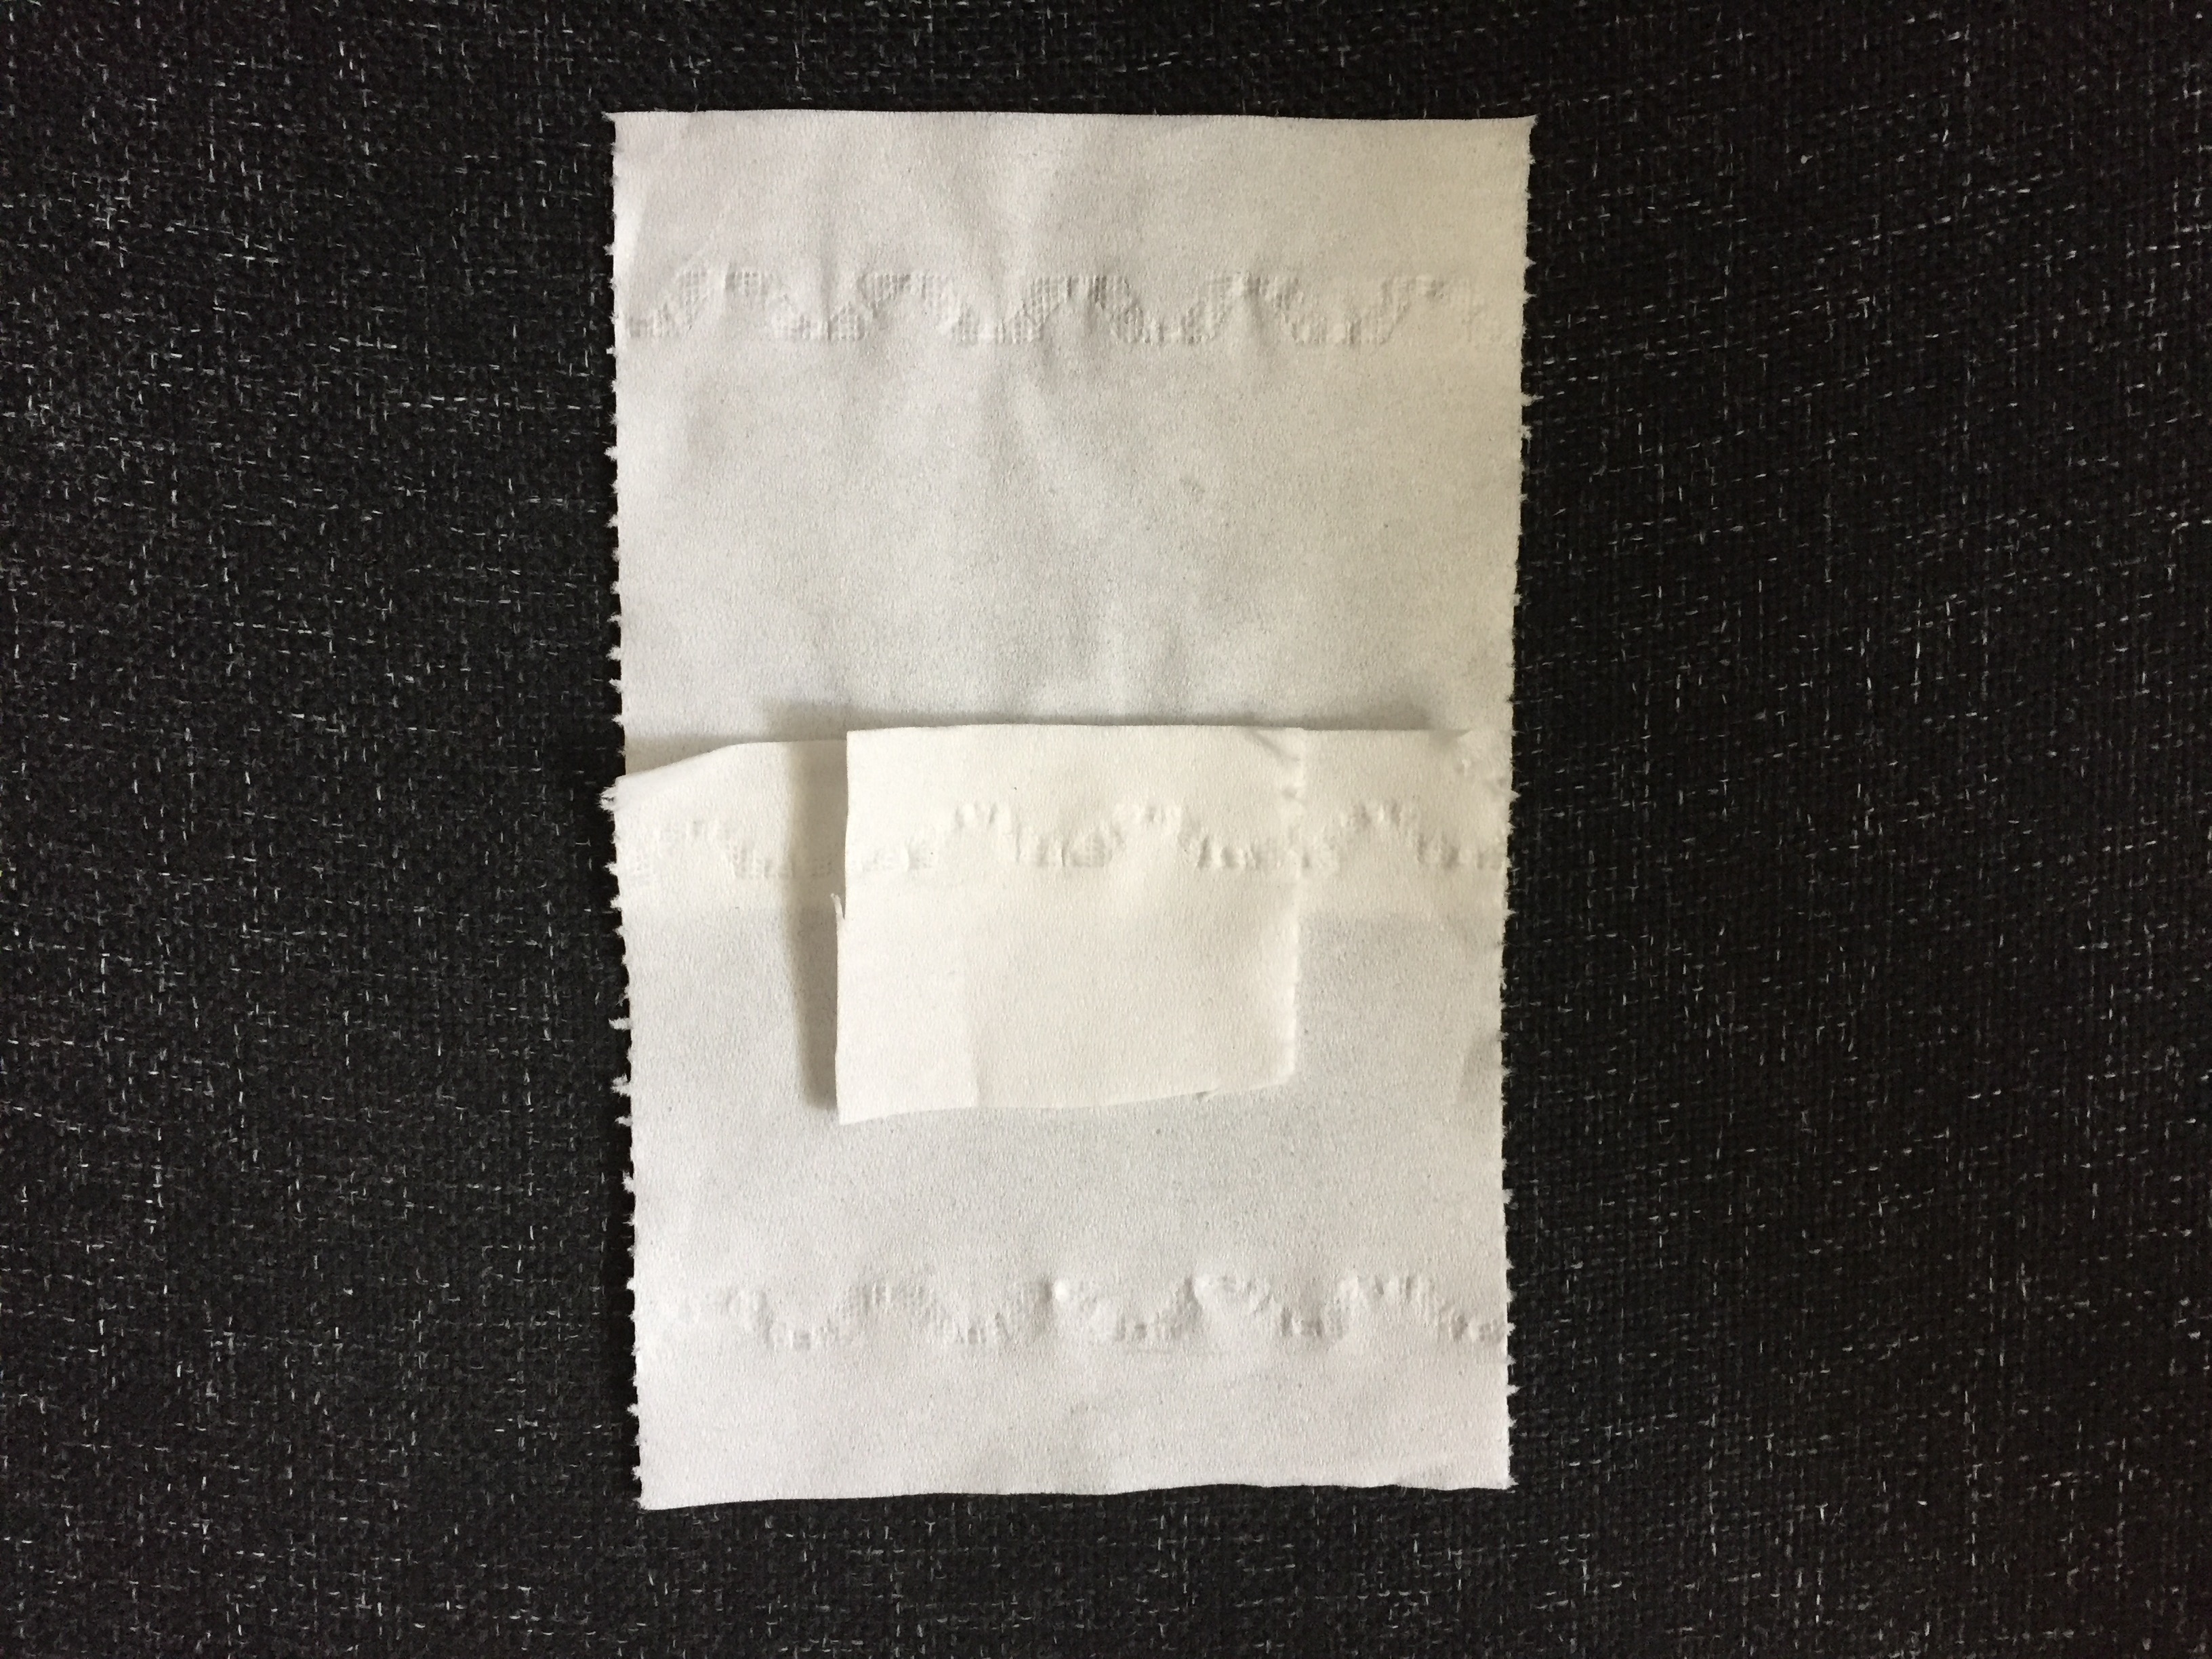 Tissue for lolly ghost